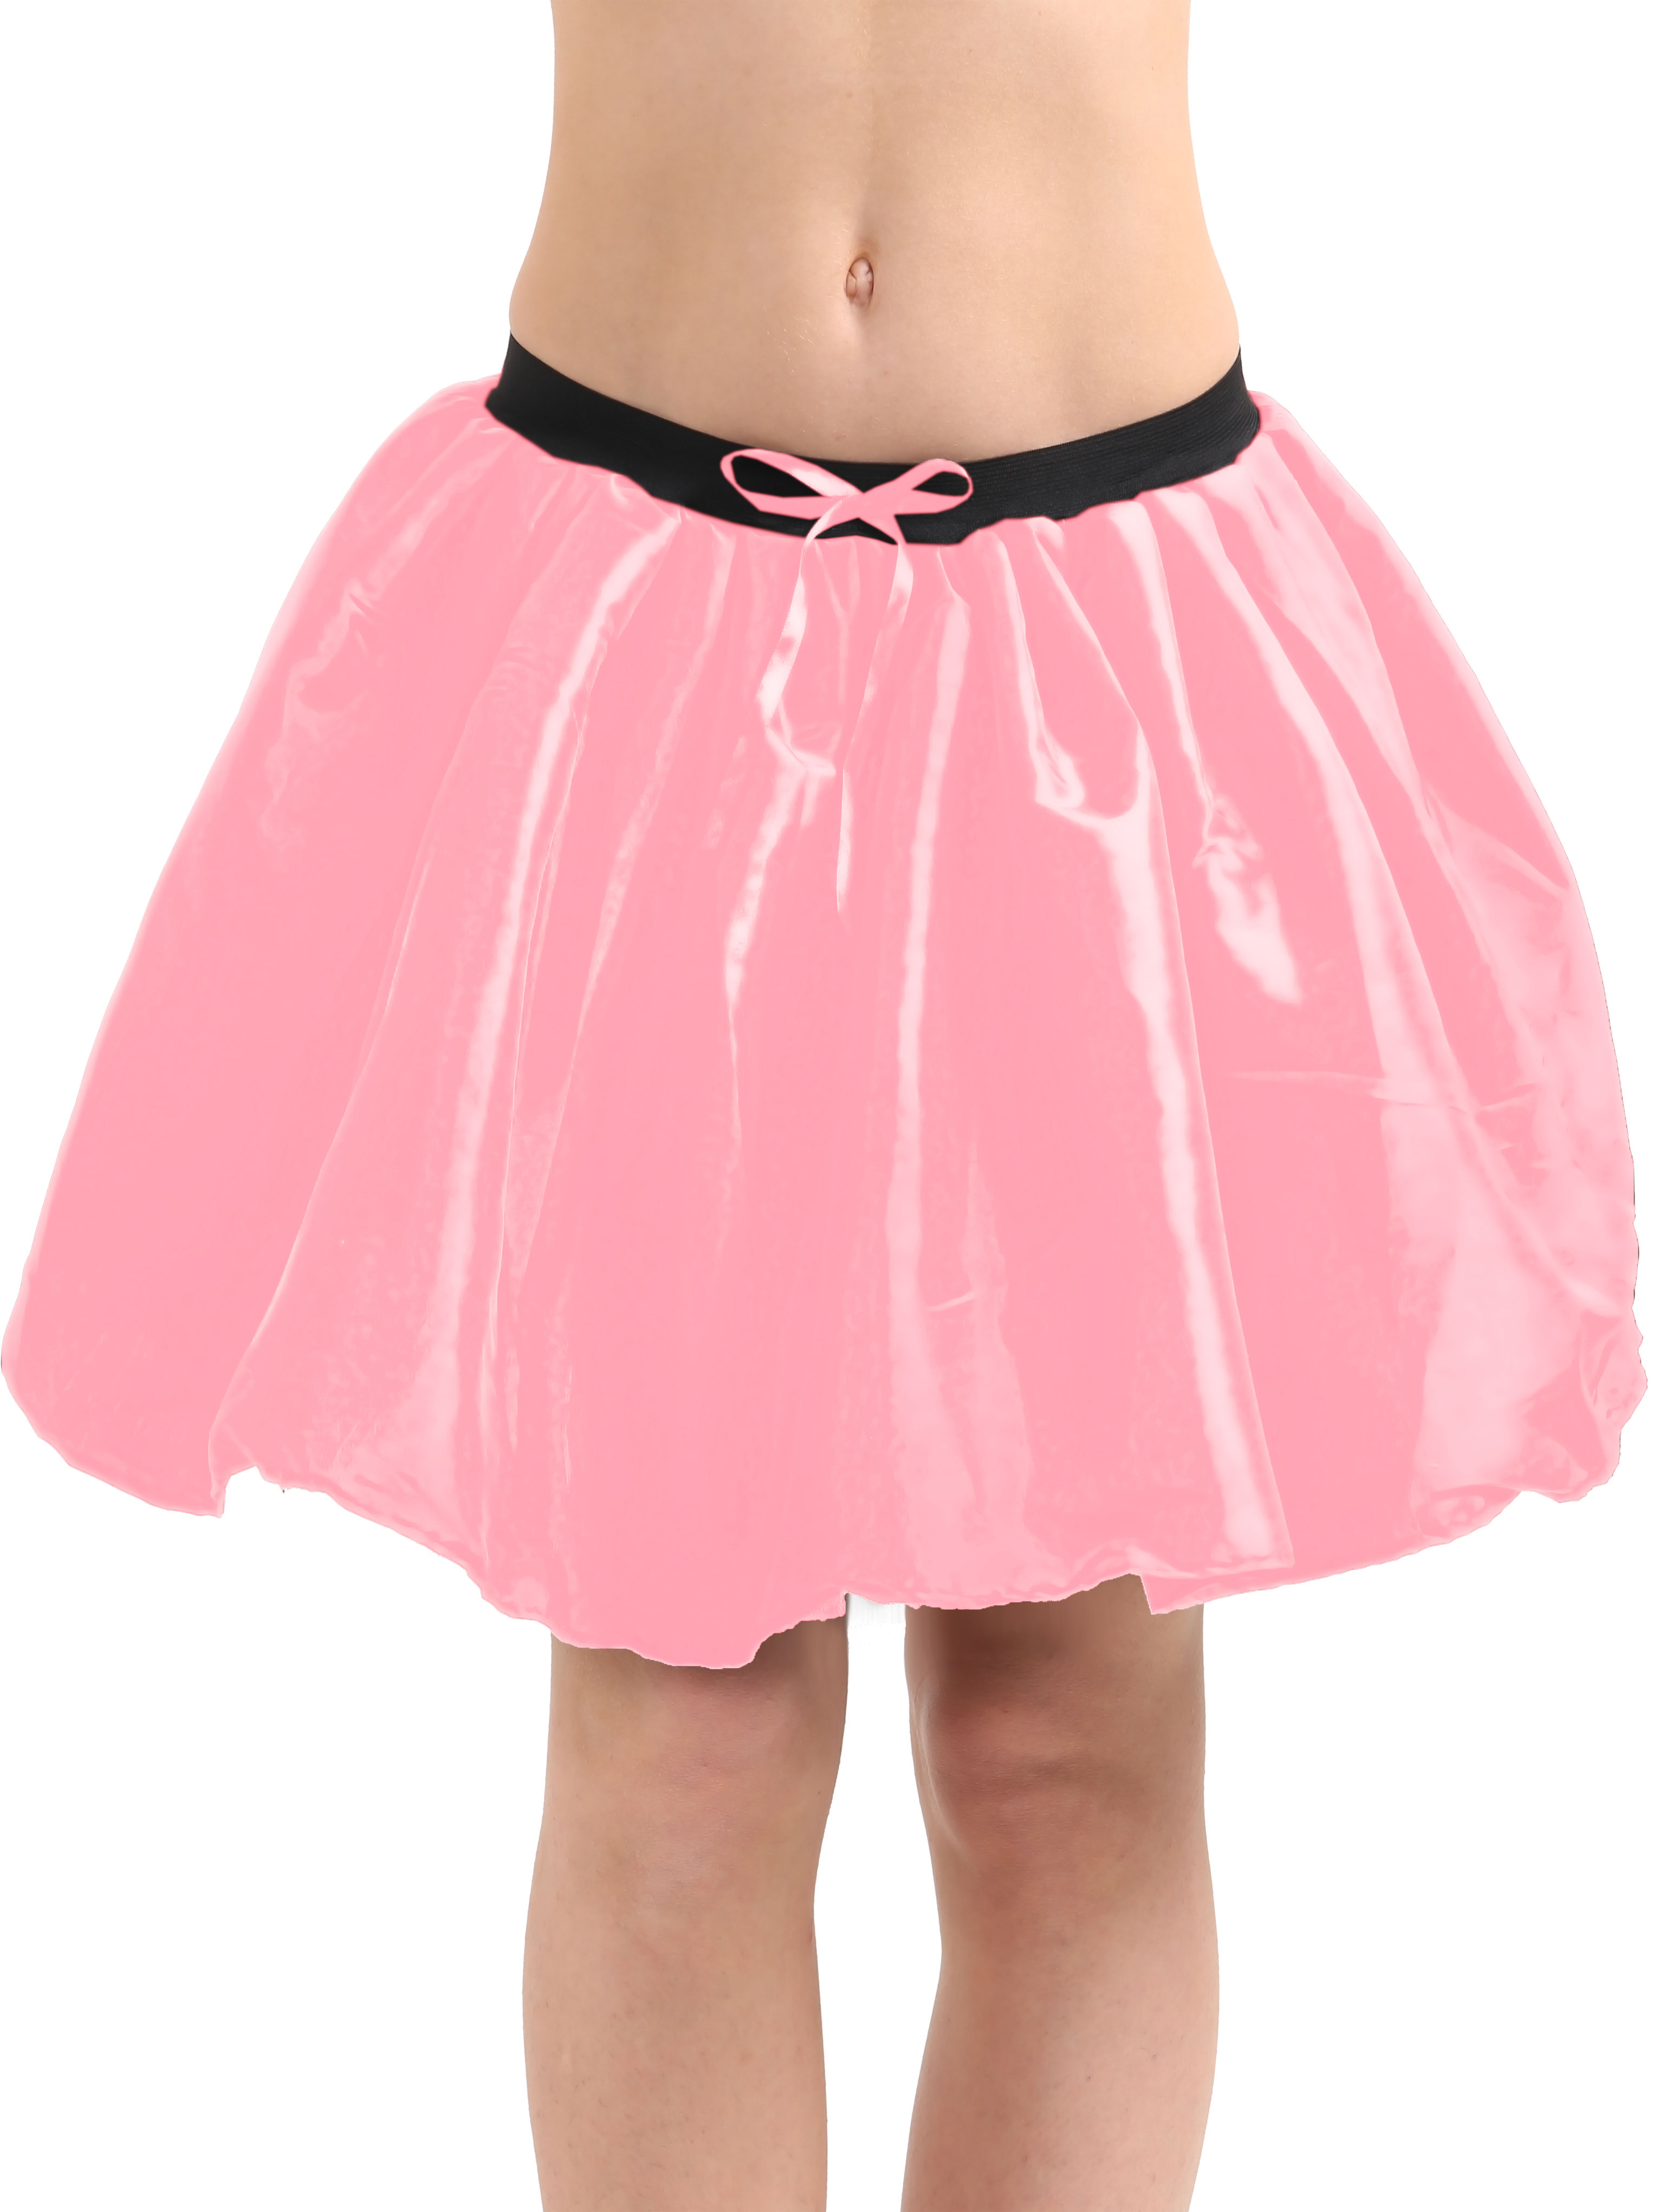 Crazy Chick 3 Layers Baby Pink Satin TuTu Skirt (Approx 18 Inches Long)